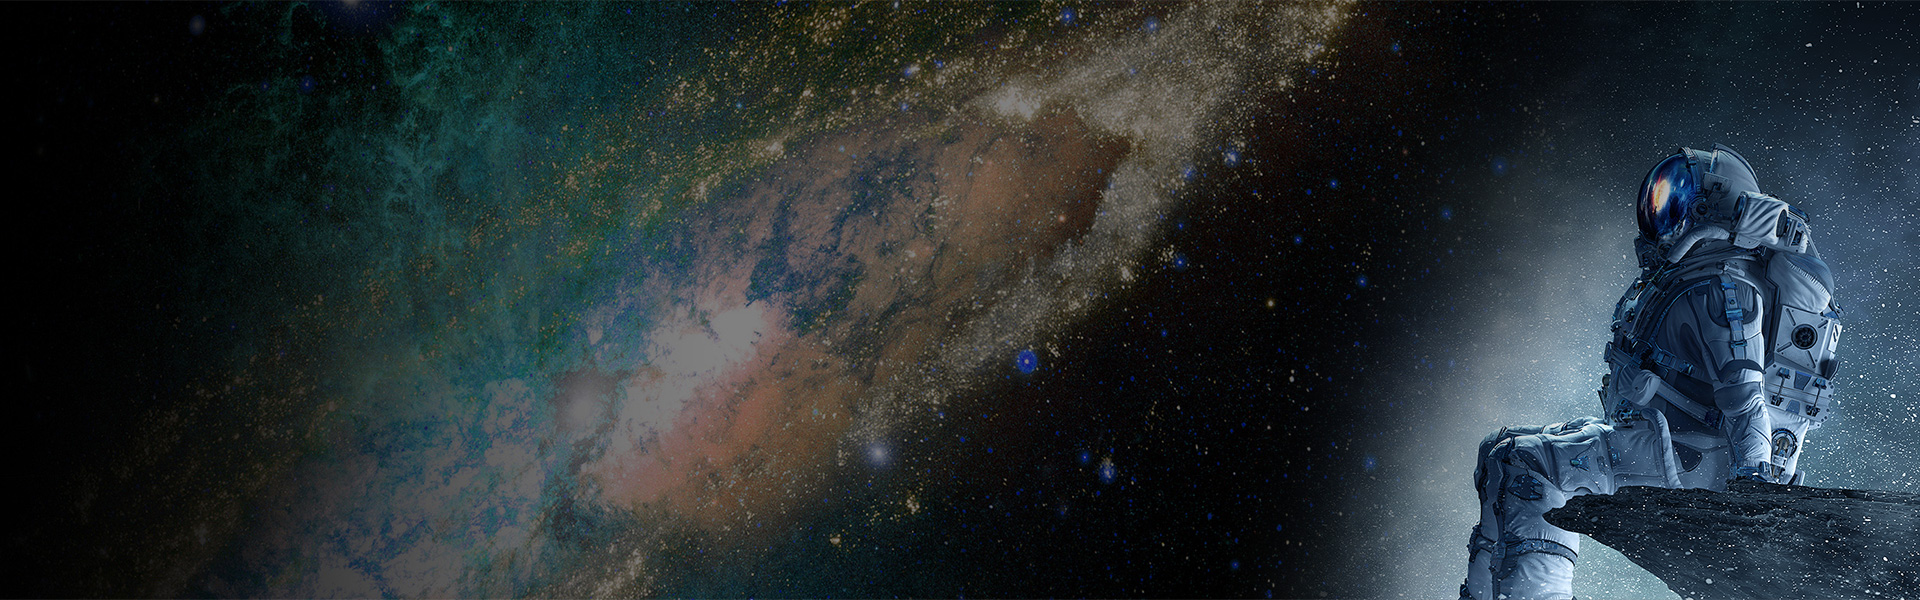 Man in spacesuit looking at milky way